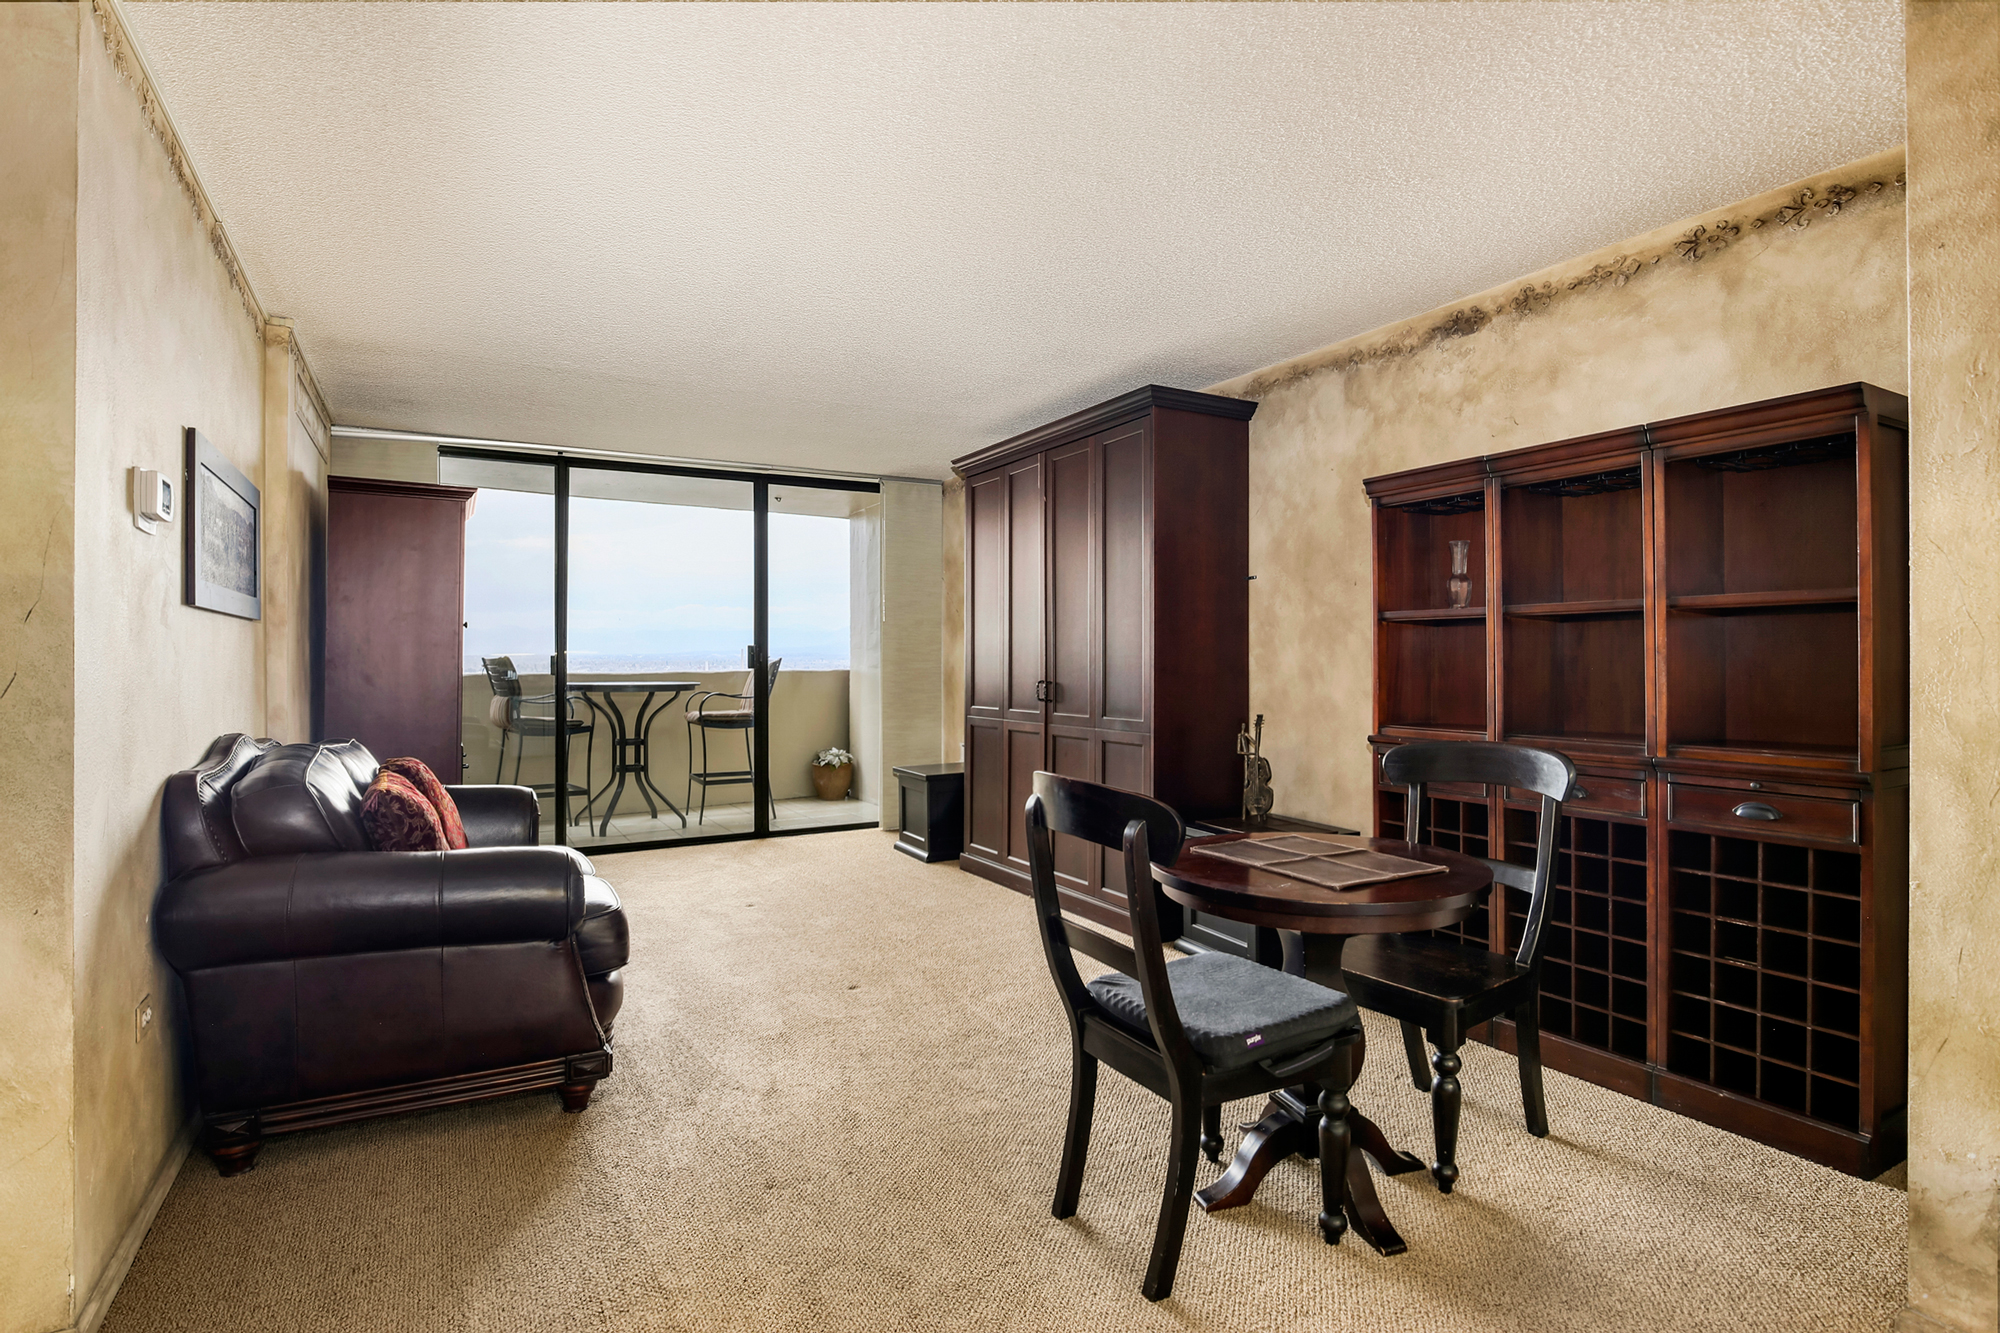 Downtown Denver condo for sale at Brooks Tower